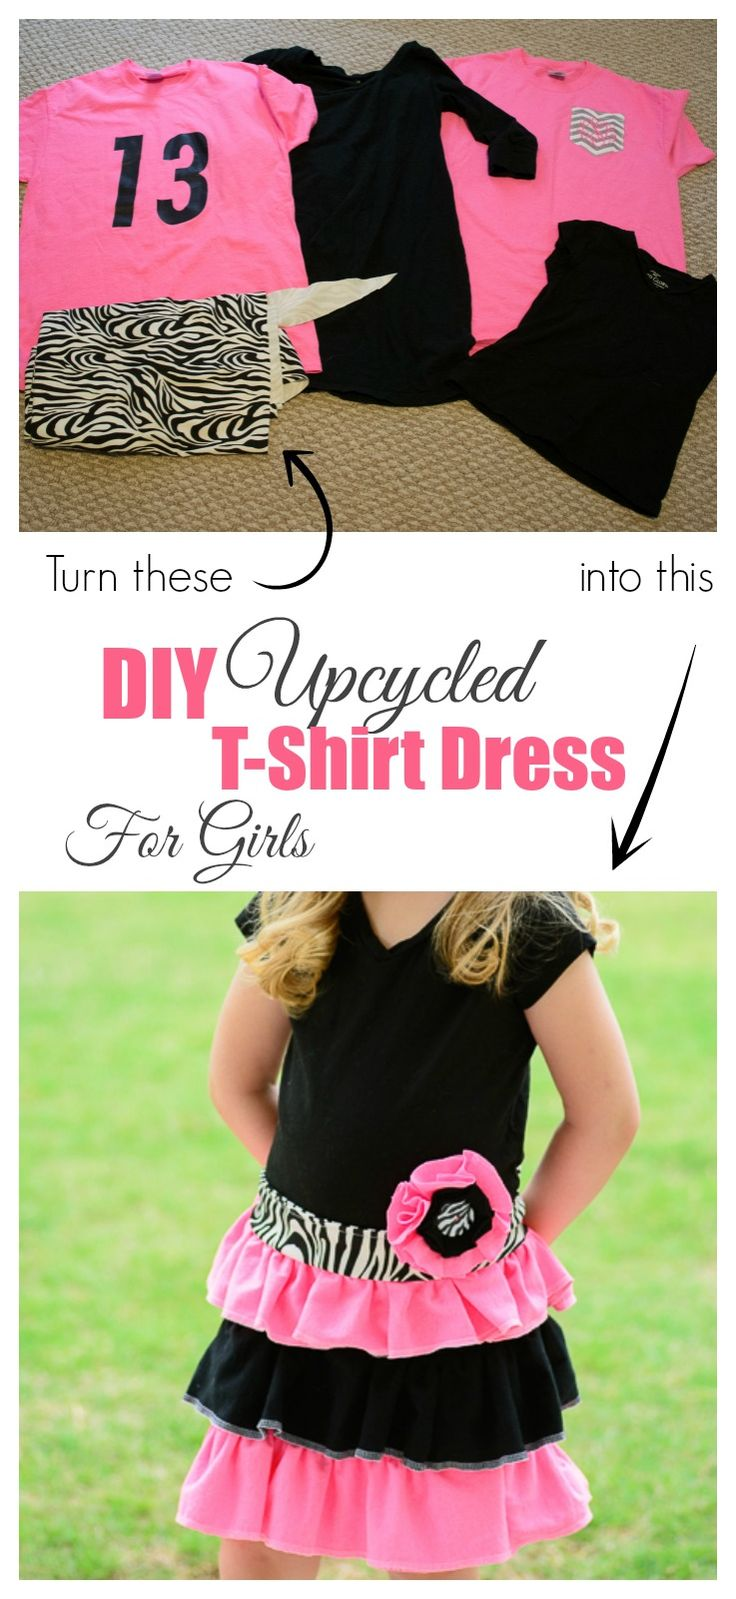 DIY Upcycled T-shirt Dress for Girls. Take old t-shirts and give them new life with this super easy tutorial. #stylebymethod #CleverGirls